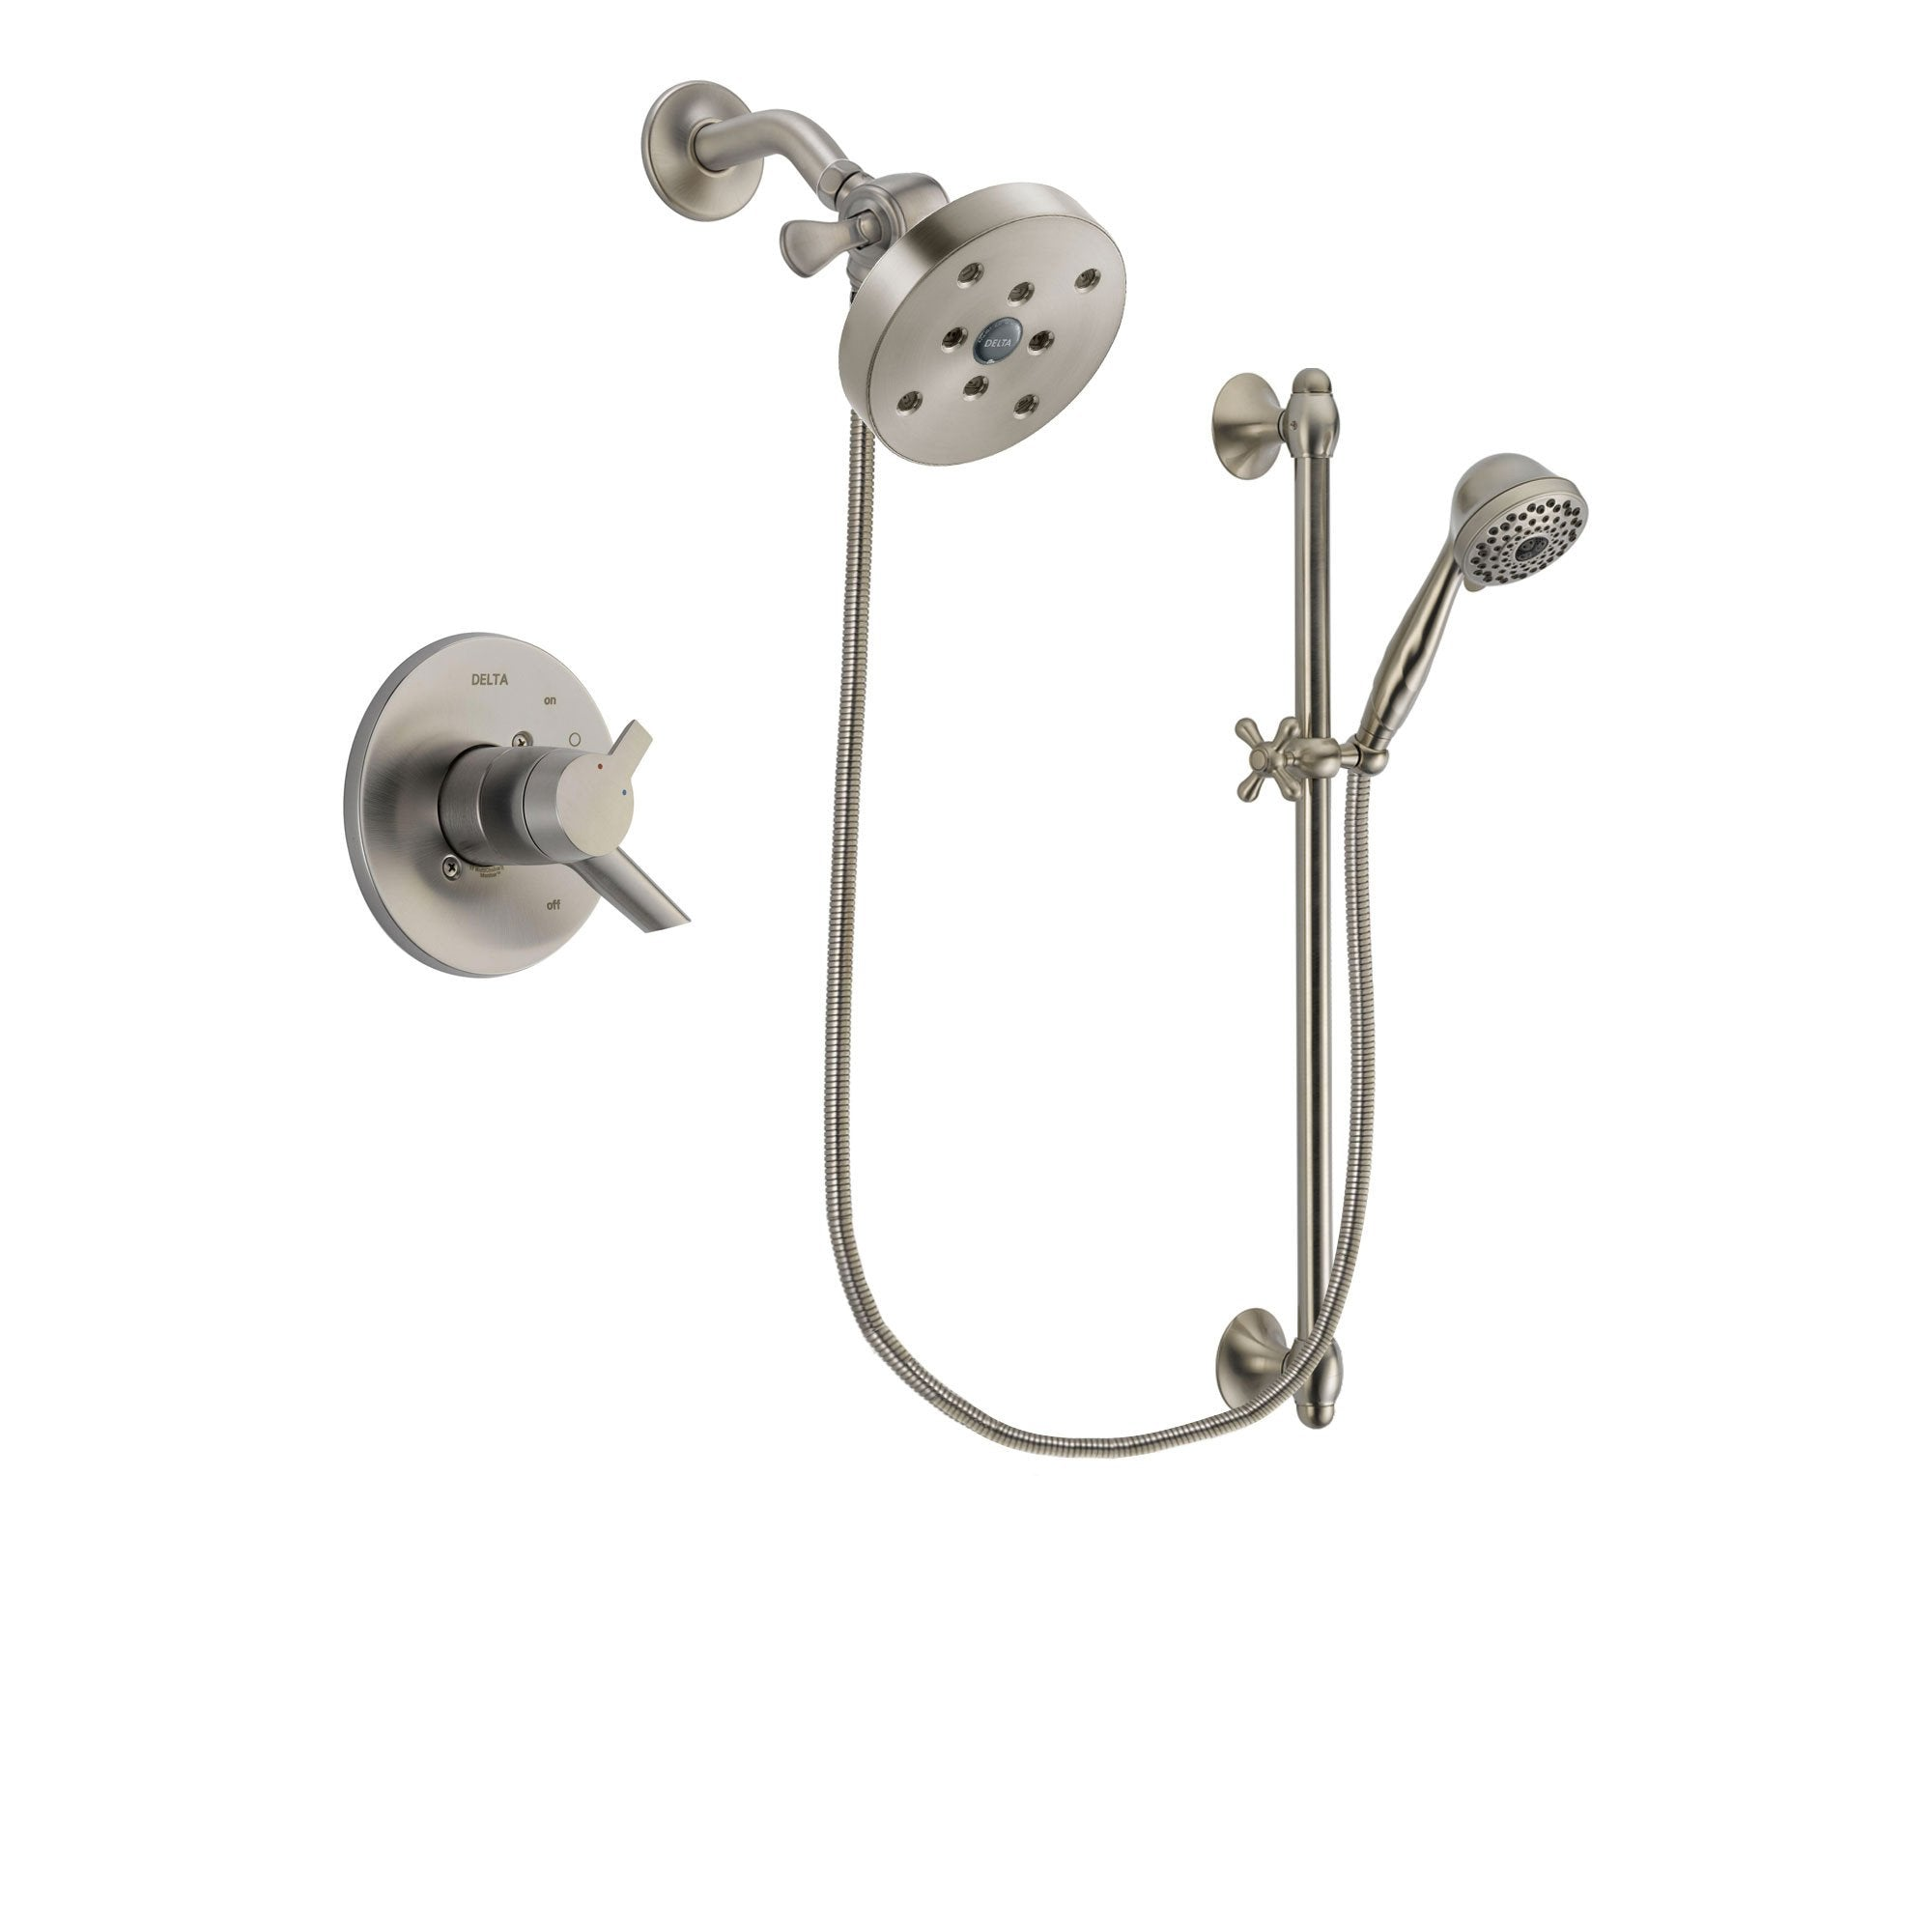 Delta Compel Stainless Steel Finish Shower Faucet System w/ Hand Spray DSP1776V